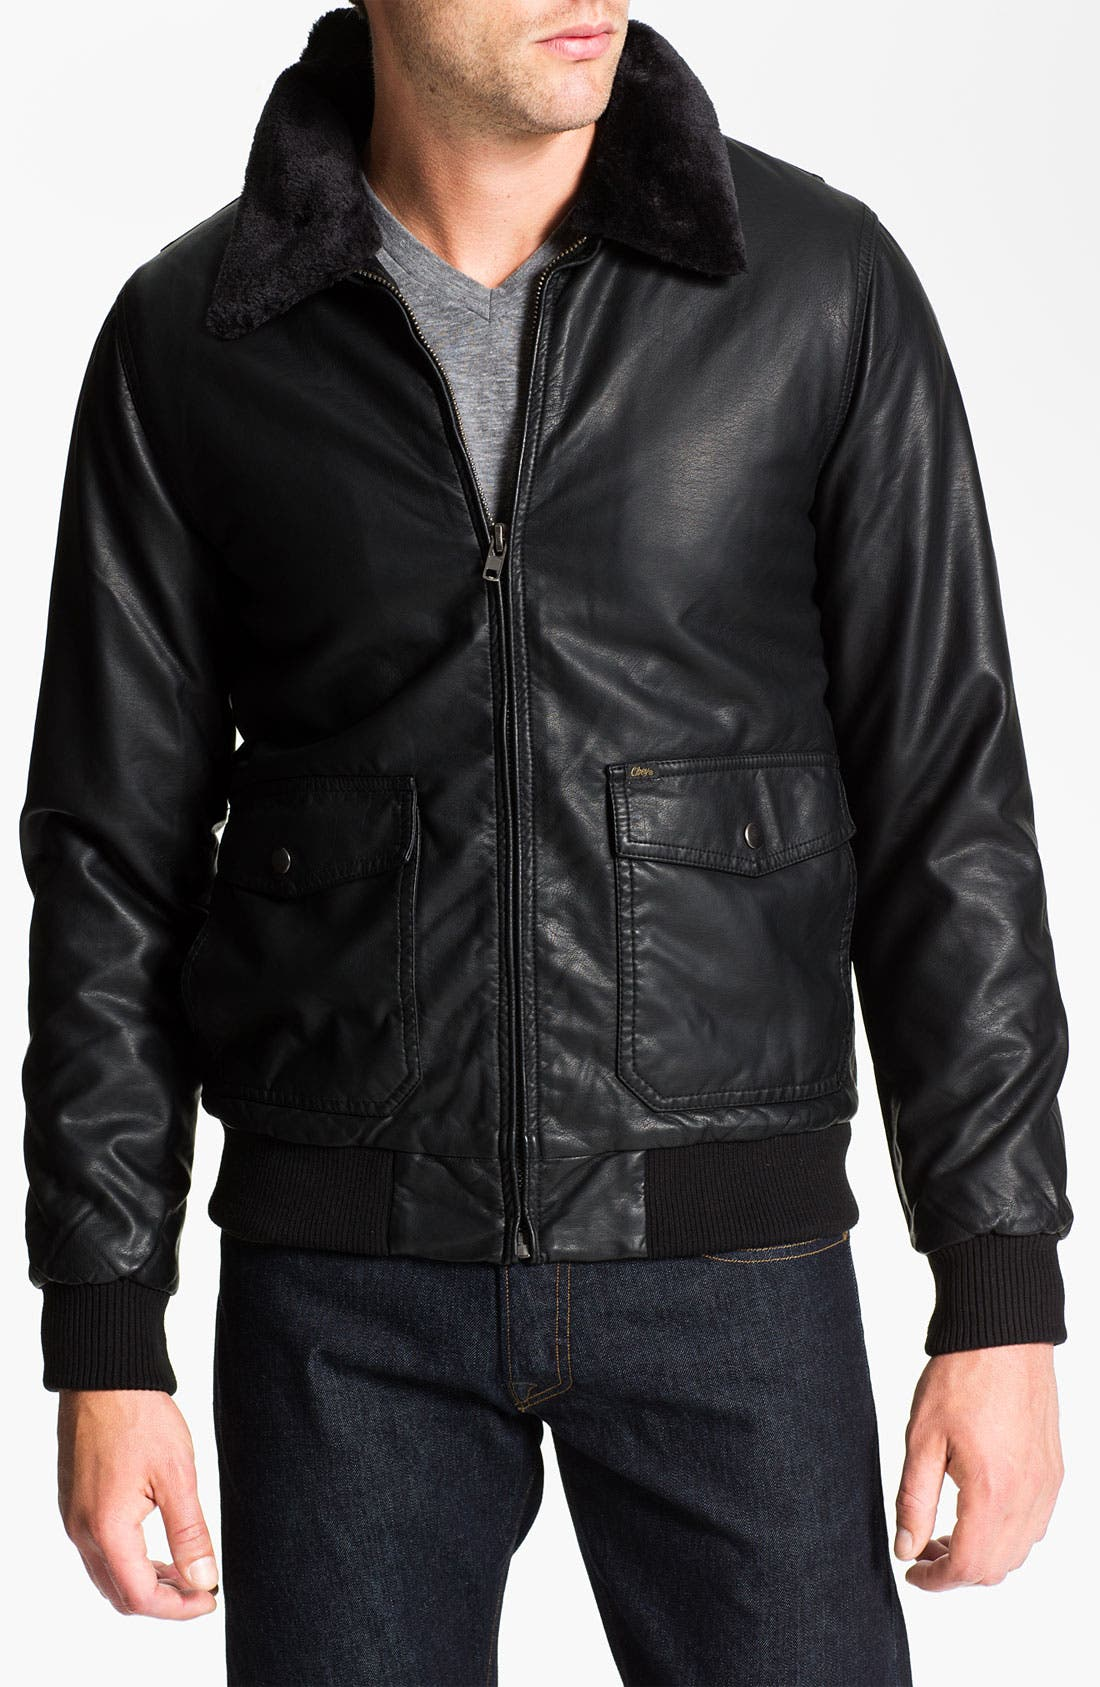 Alternate Image 1 Selected - Obey 'Downtown' Bomber Jacket